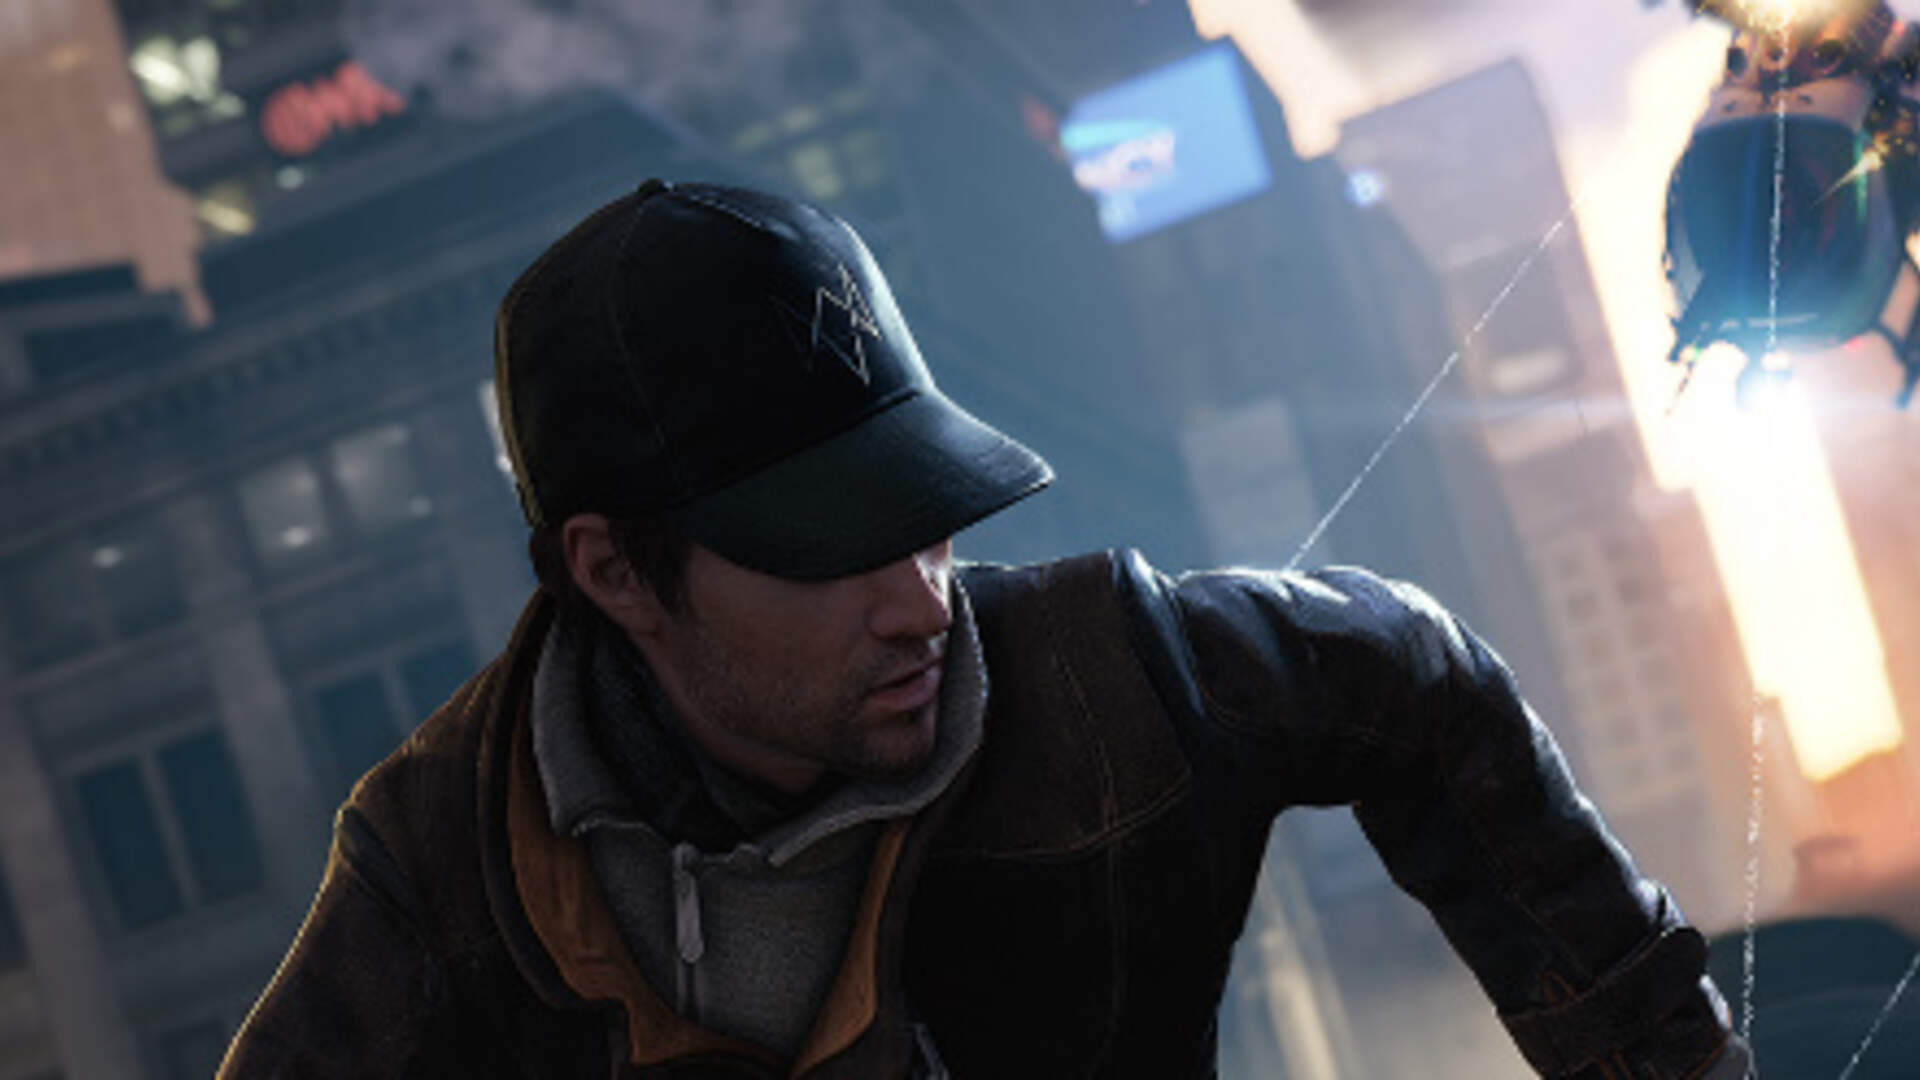 Watch Dogs is Ubisoft's Last Mature Game on Wii U